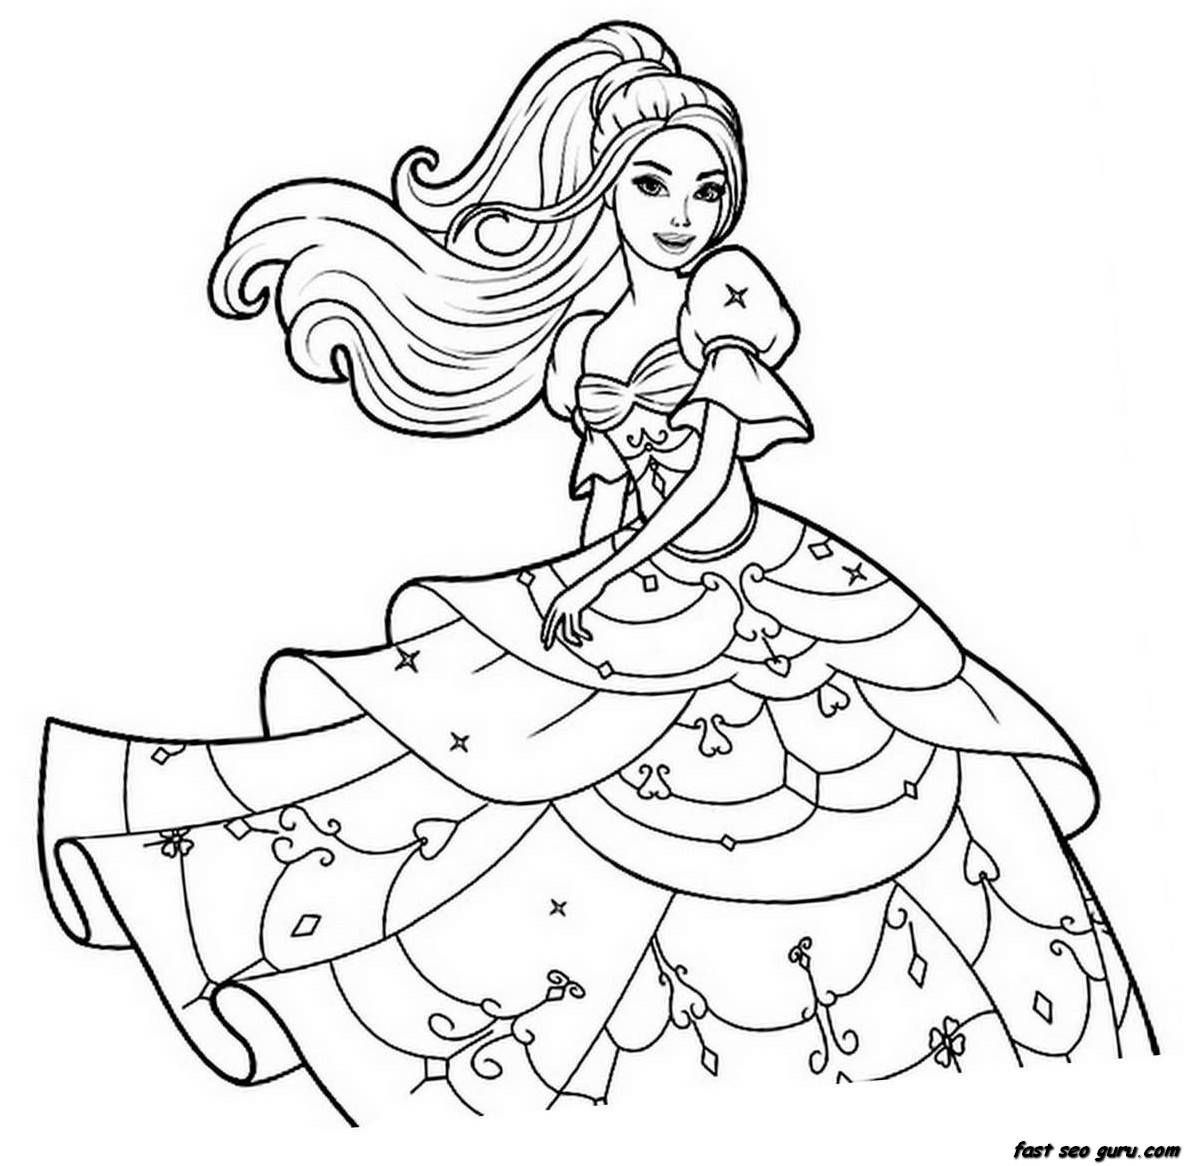 Print out coloring pages for girls - Coloring Pages For Girls Printable Coloring Pages For Girls Free Coloring Pages For Girls